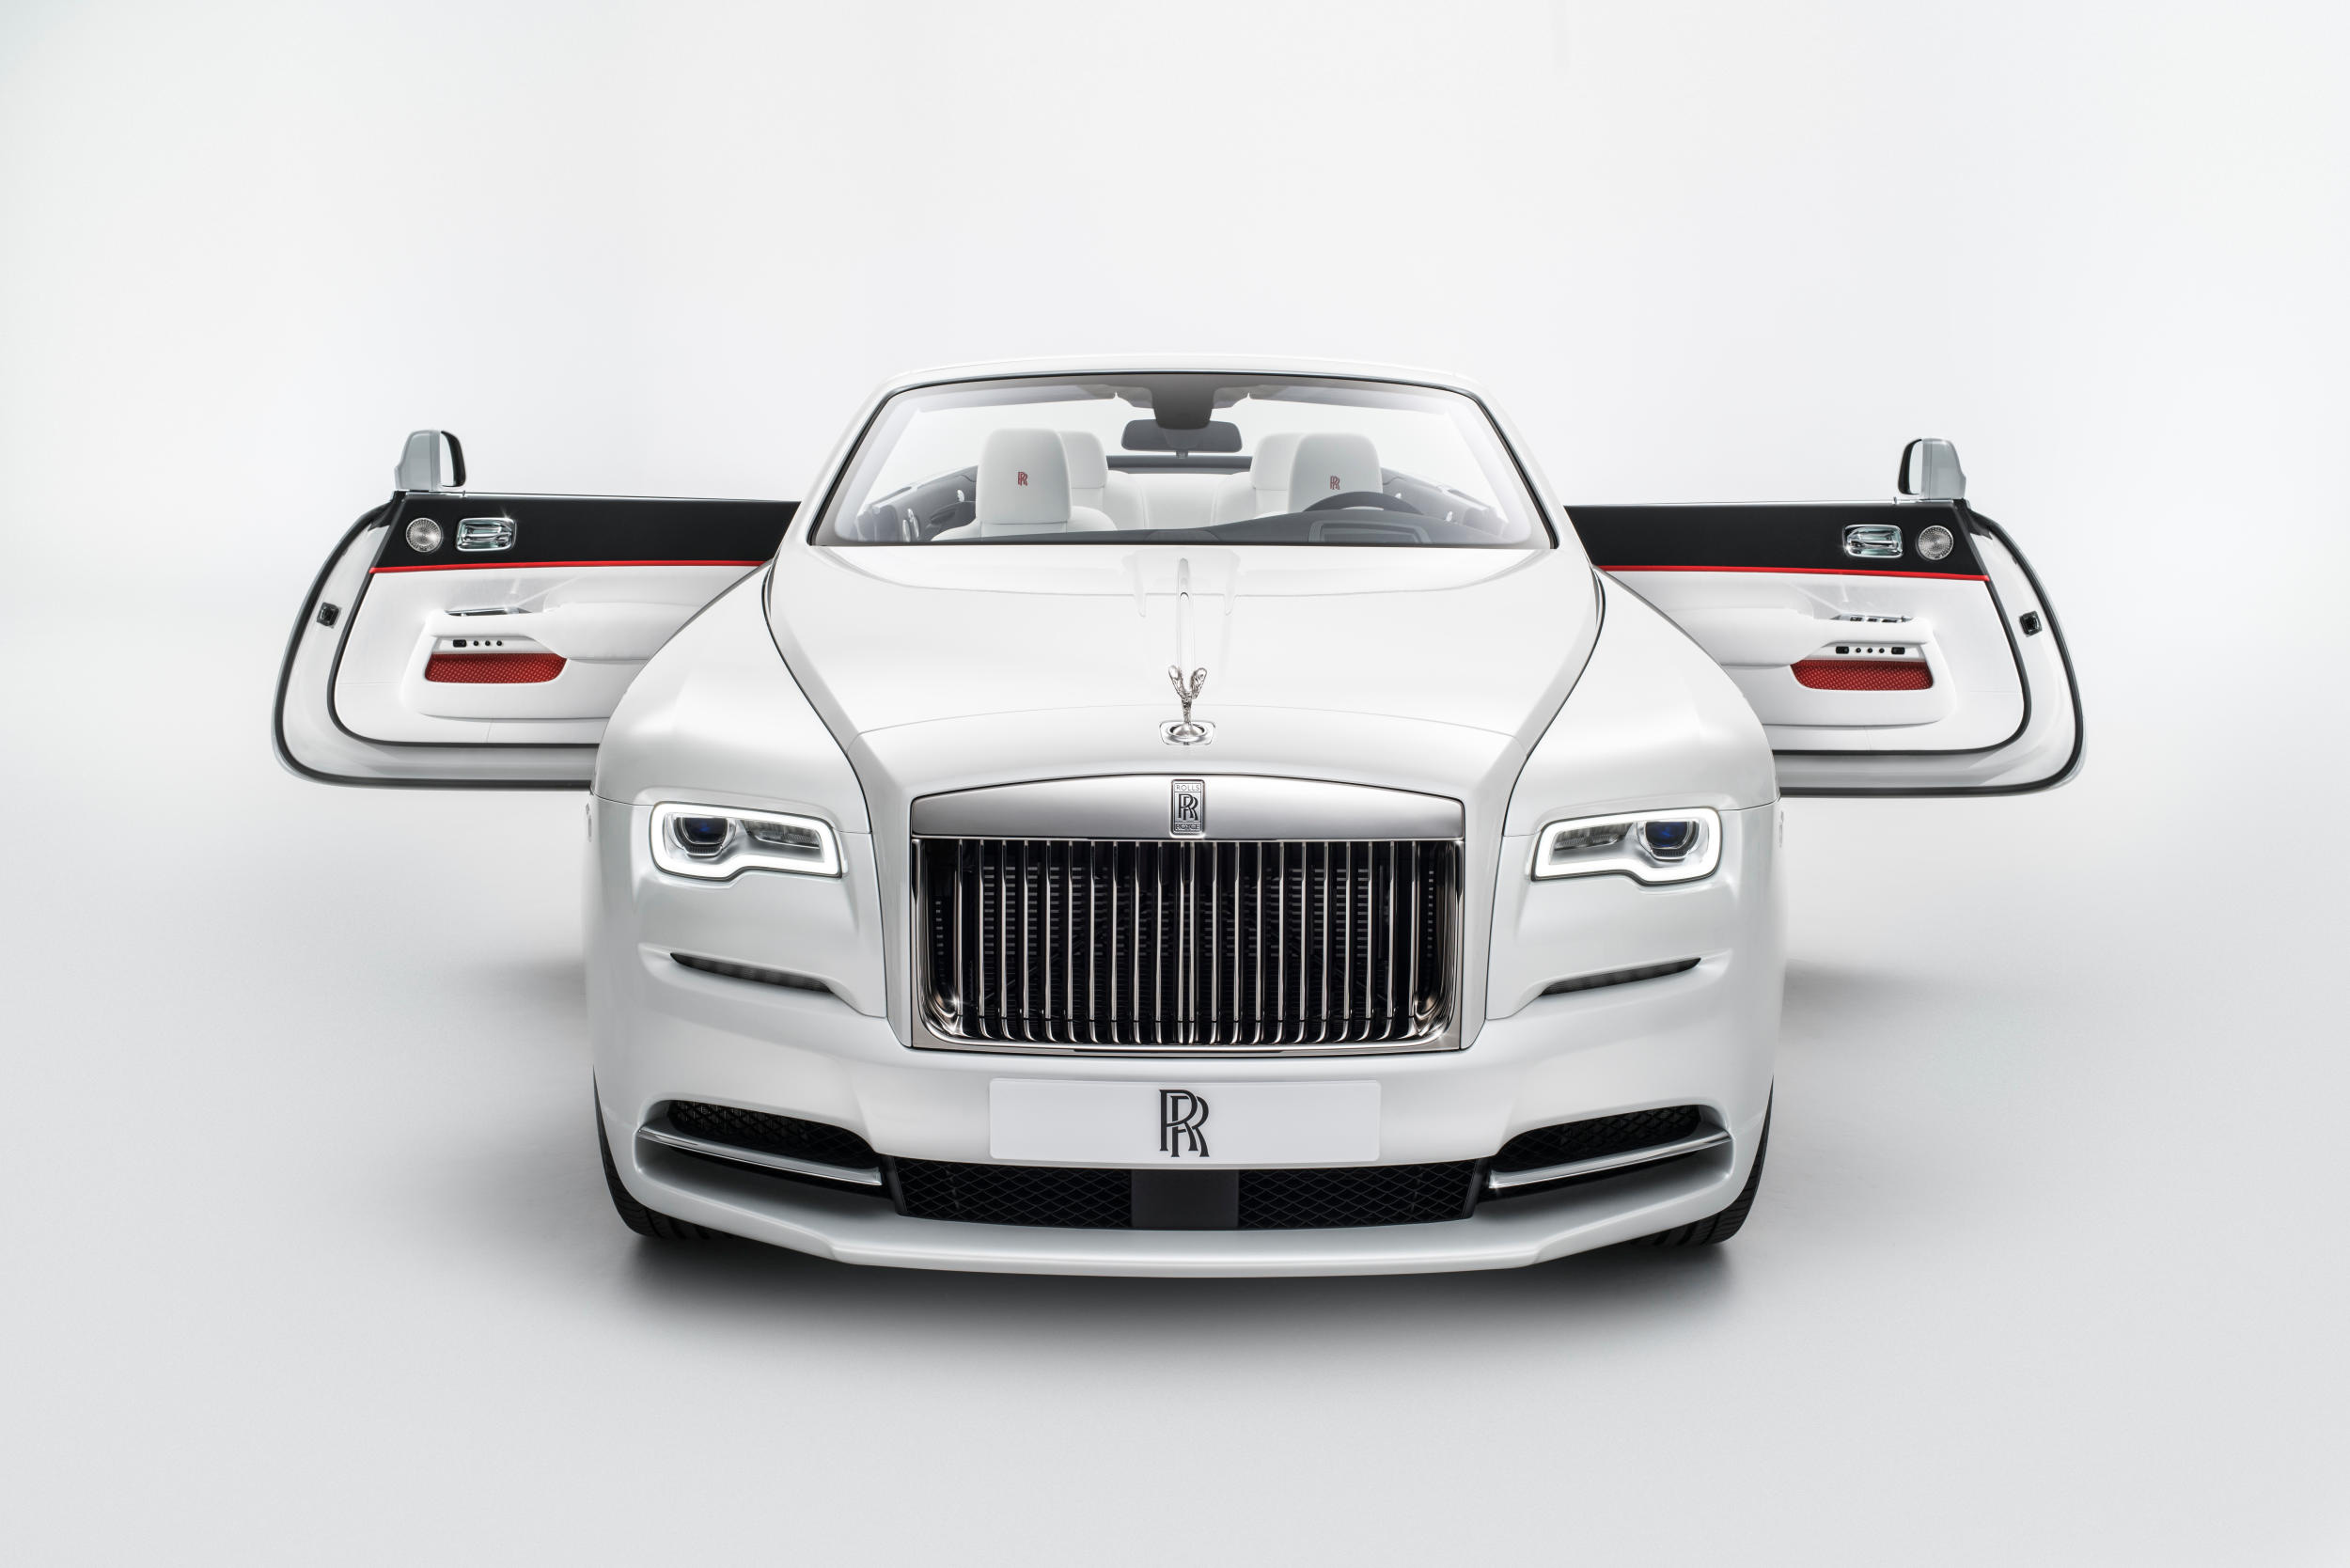 Rolls-Royce Introduces a Lookbook for Its 2017 Spring/Summer Line of Fashion-Inspired Vehicles